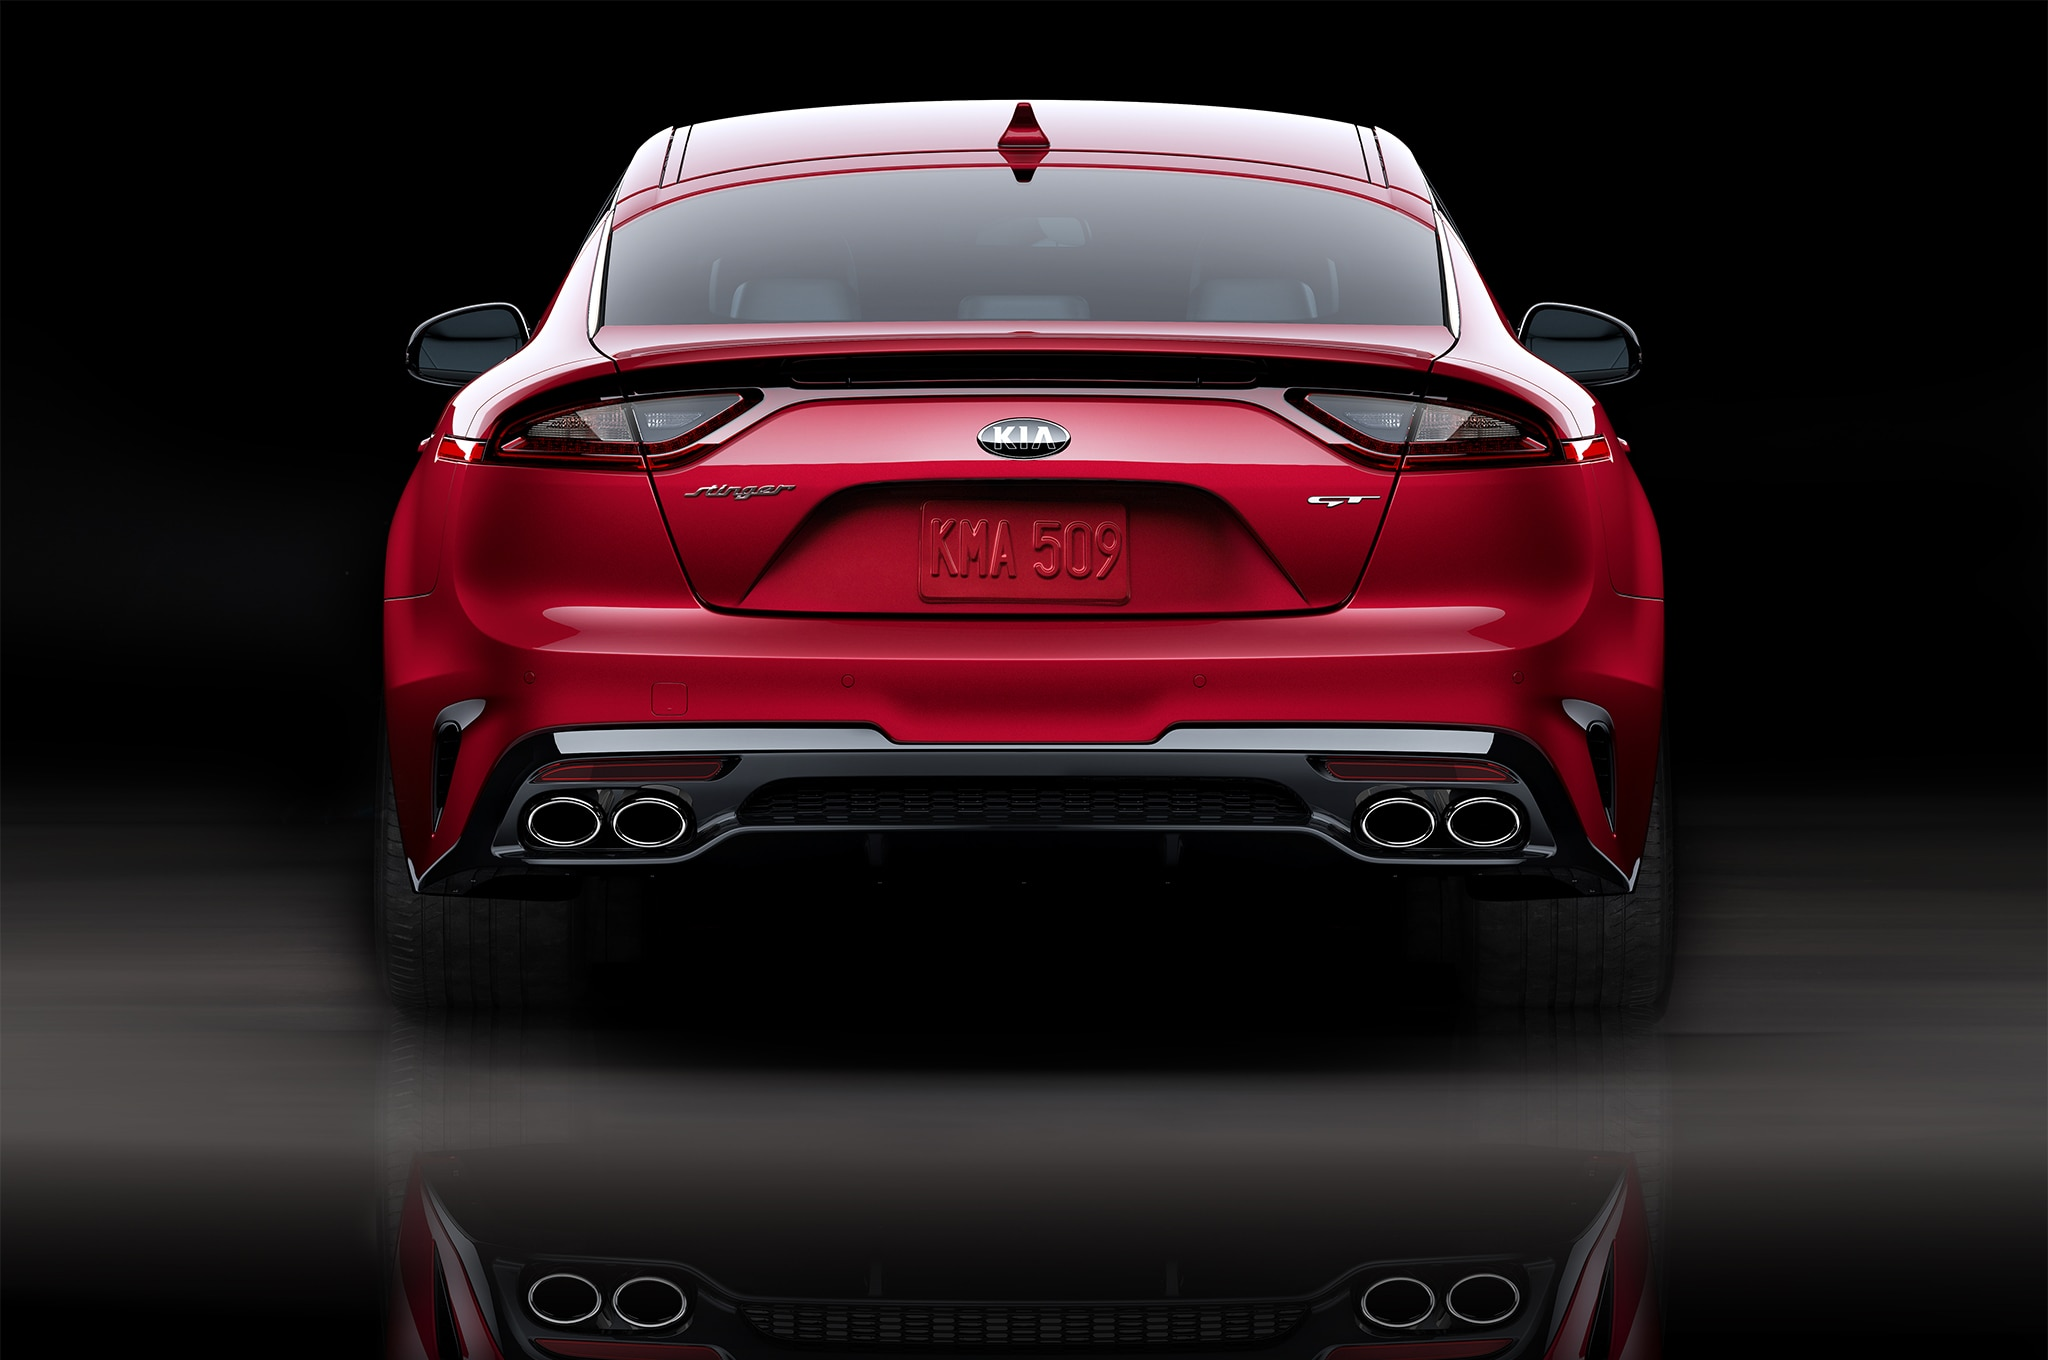 12 Things You Didnt Know About The 2018 Kia Stinger